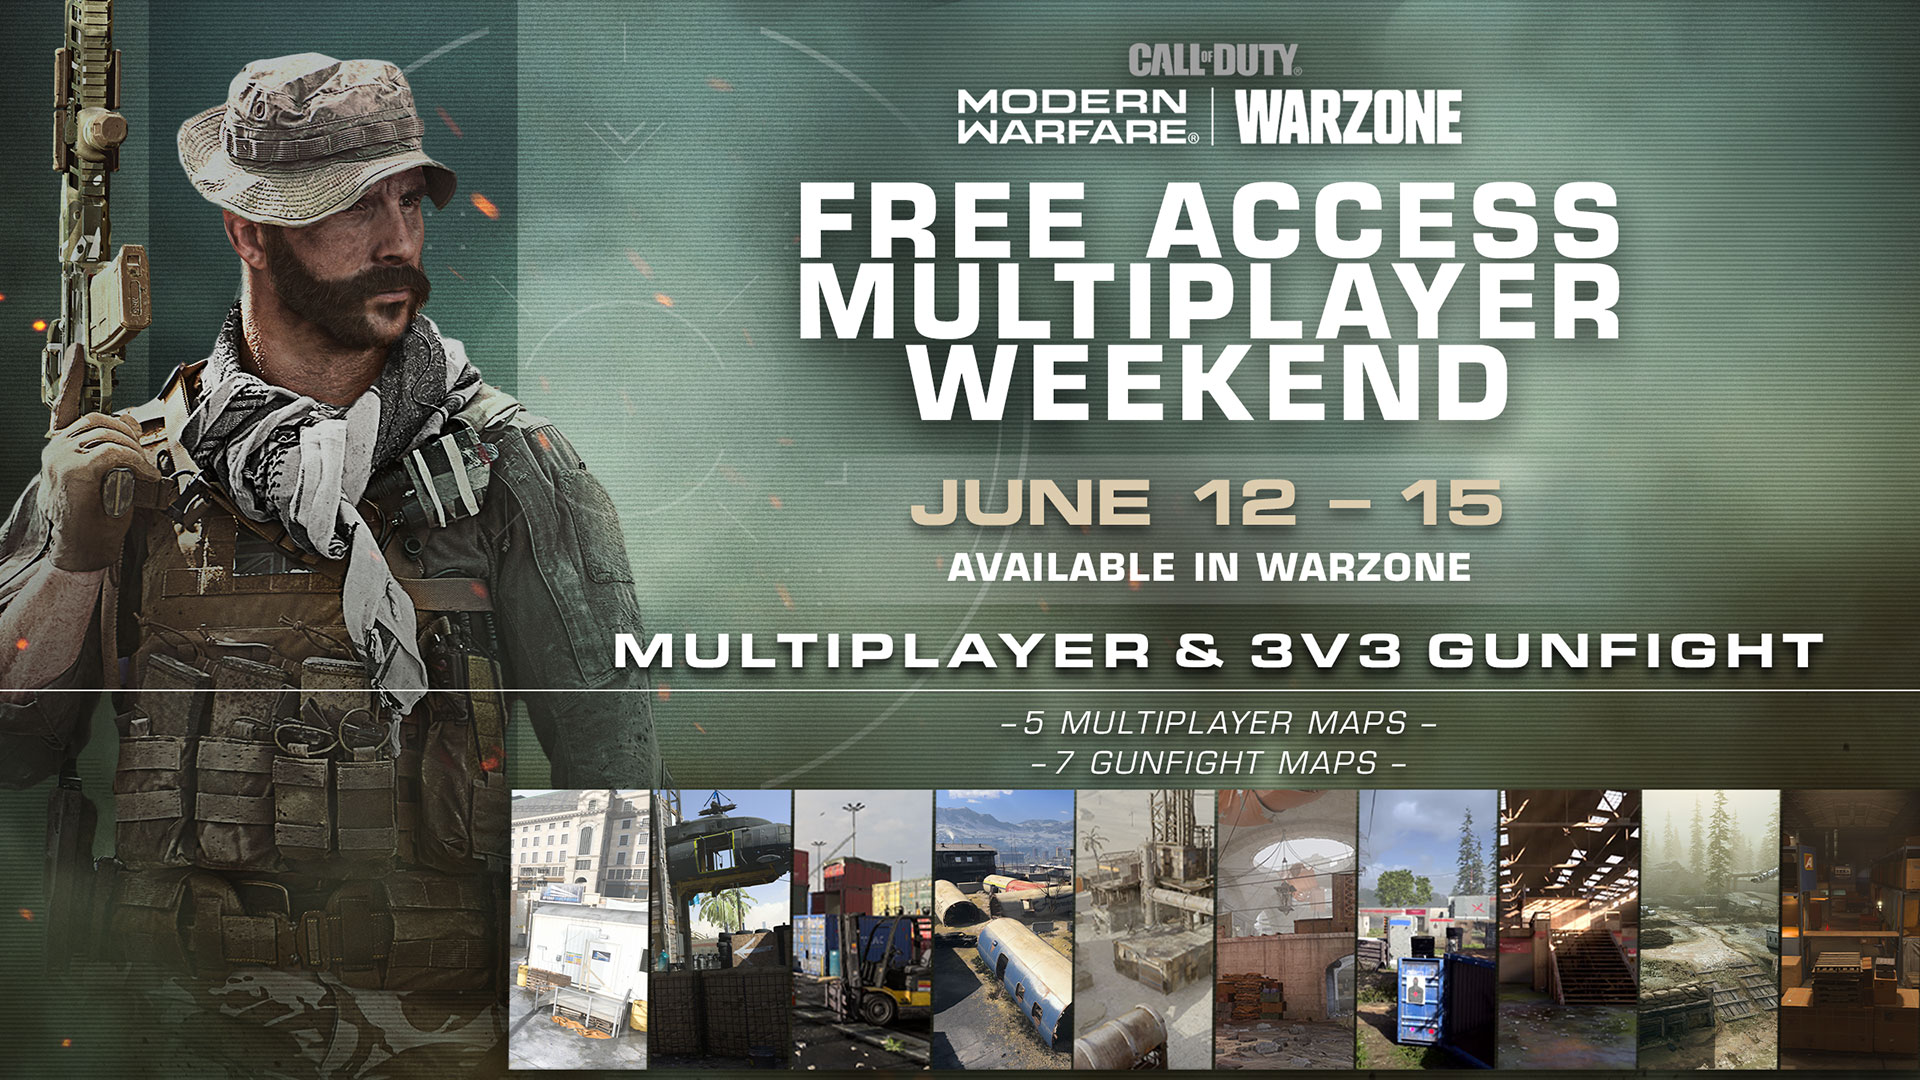 Ten Tips for Transitioning from Warzone to MP During the Modern Warfare® Free Access Multiplayer Weekend - Image 5